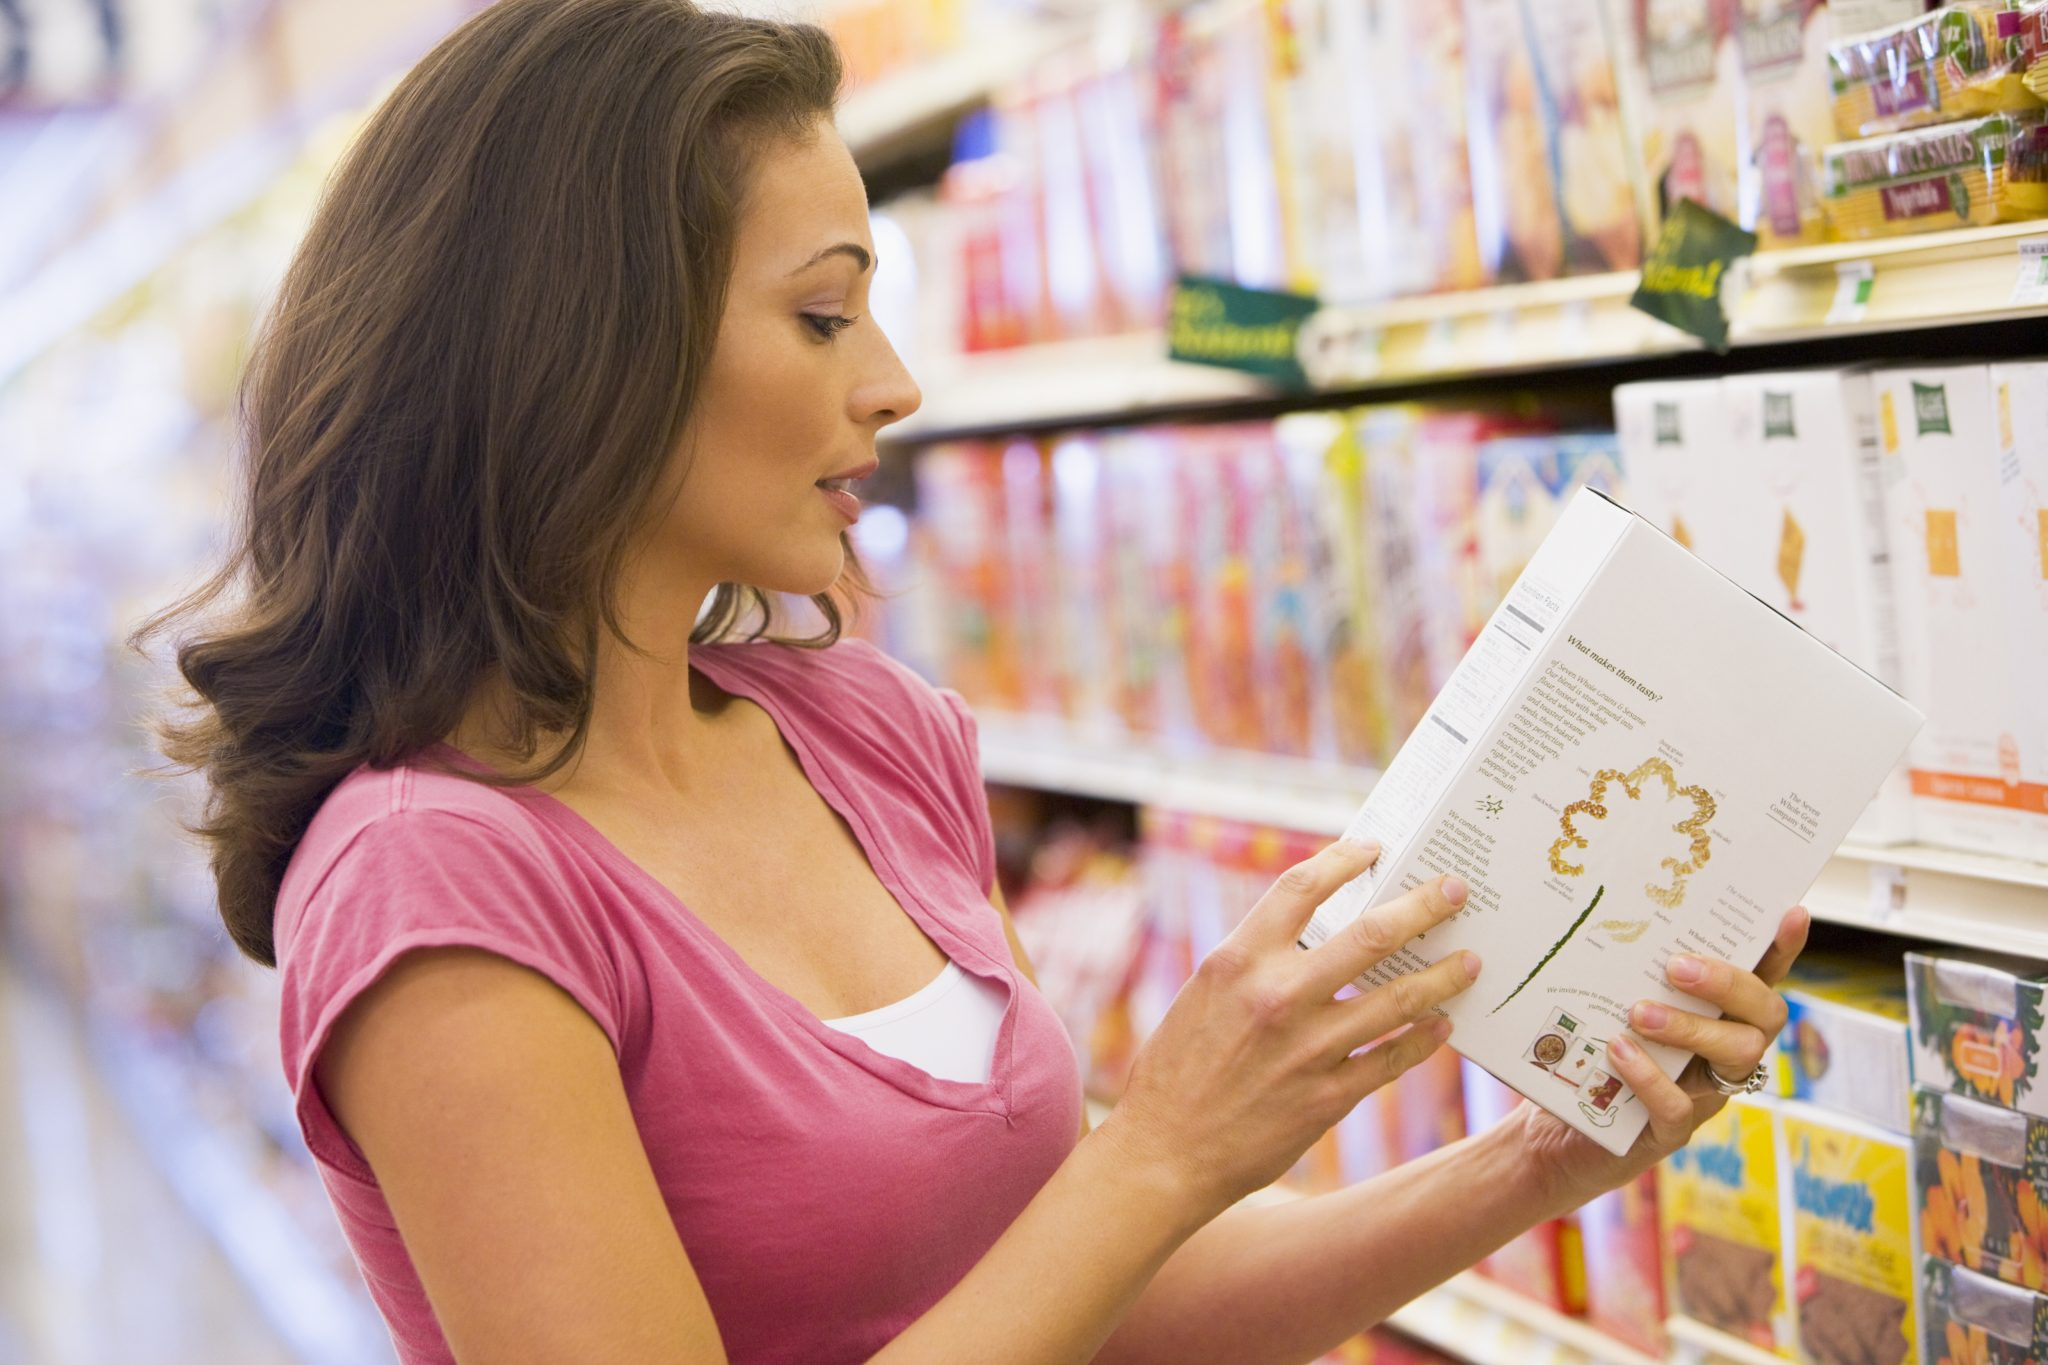 Nutrition reading on food labels